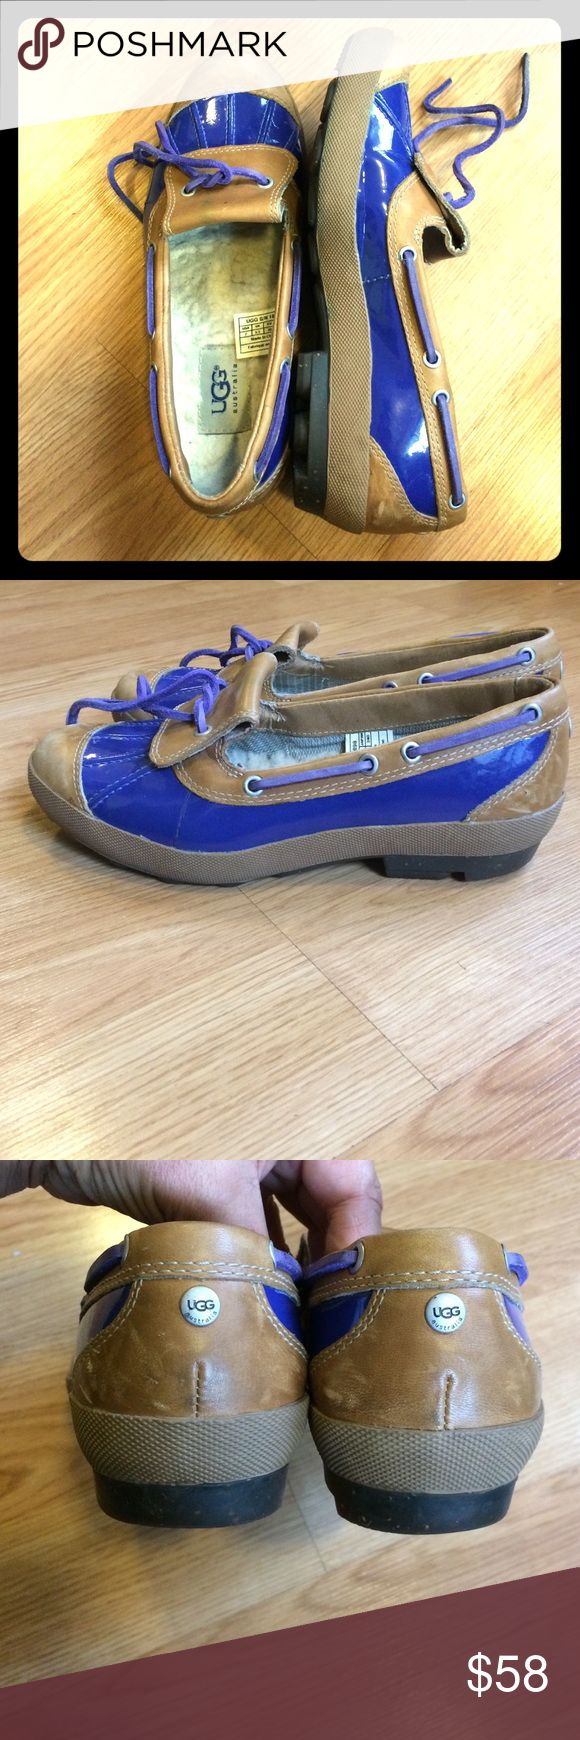 Uggs Australia skimmer shoes Uggs Australia woman's skimmer shoe great condition ! Blue and tan , open to offers ! :) UGG Shoes Flats & Loafers